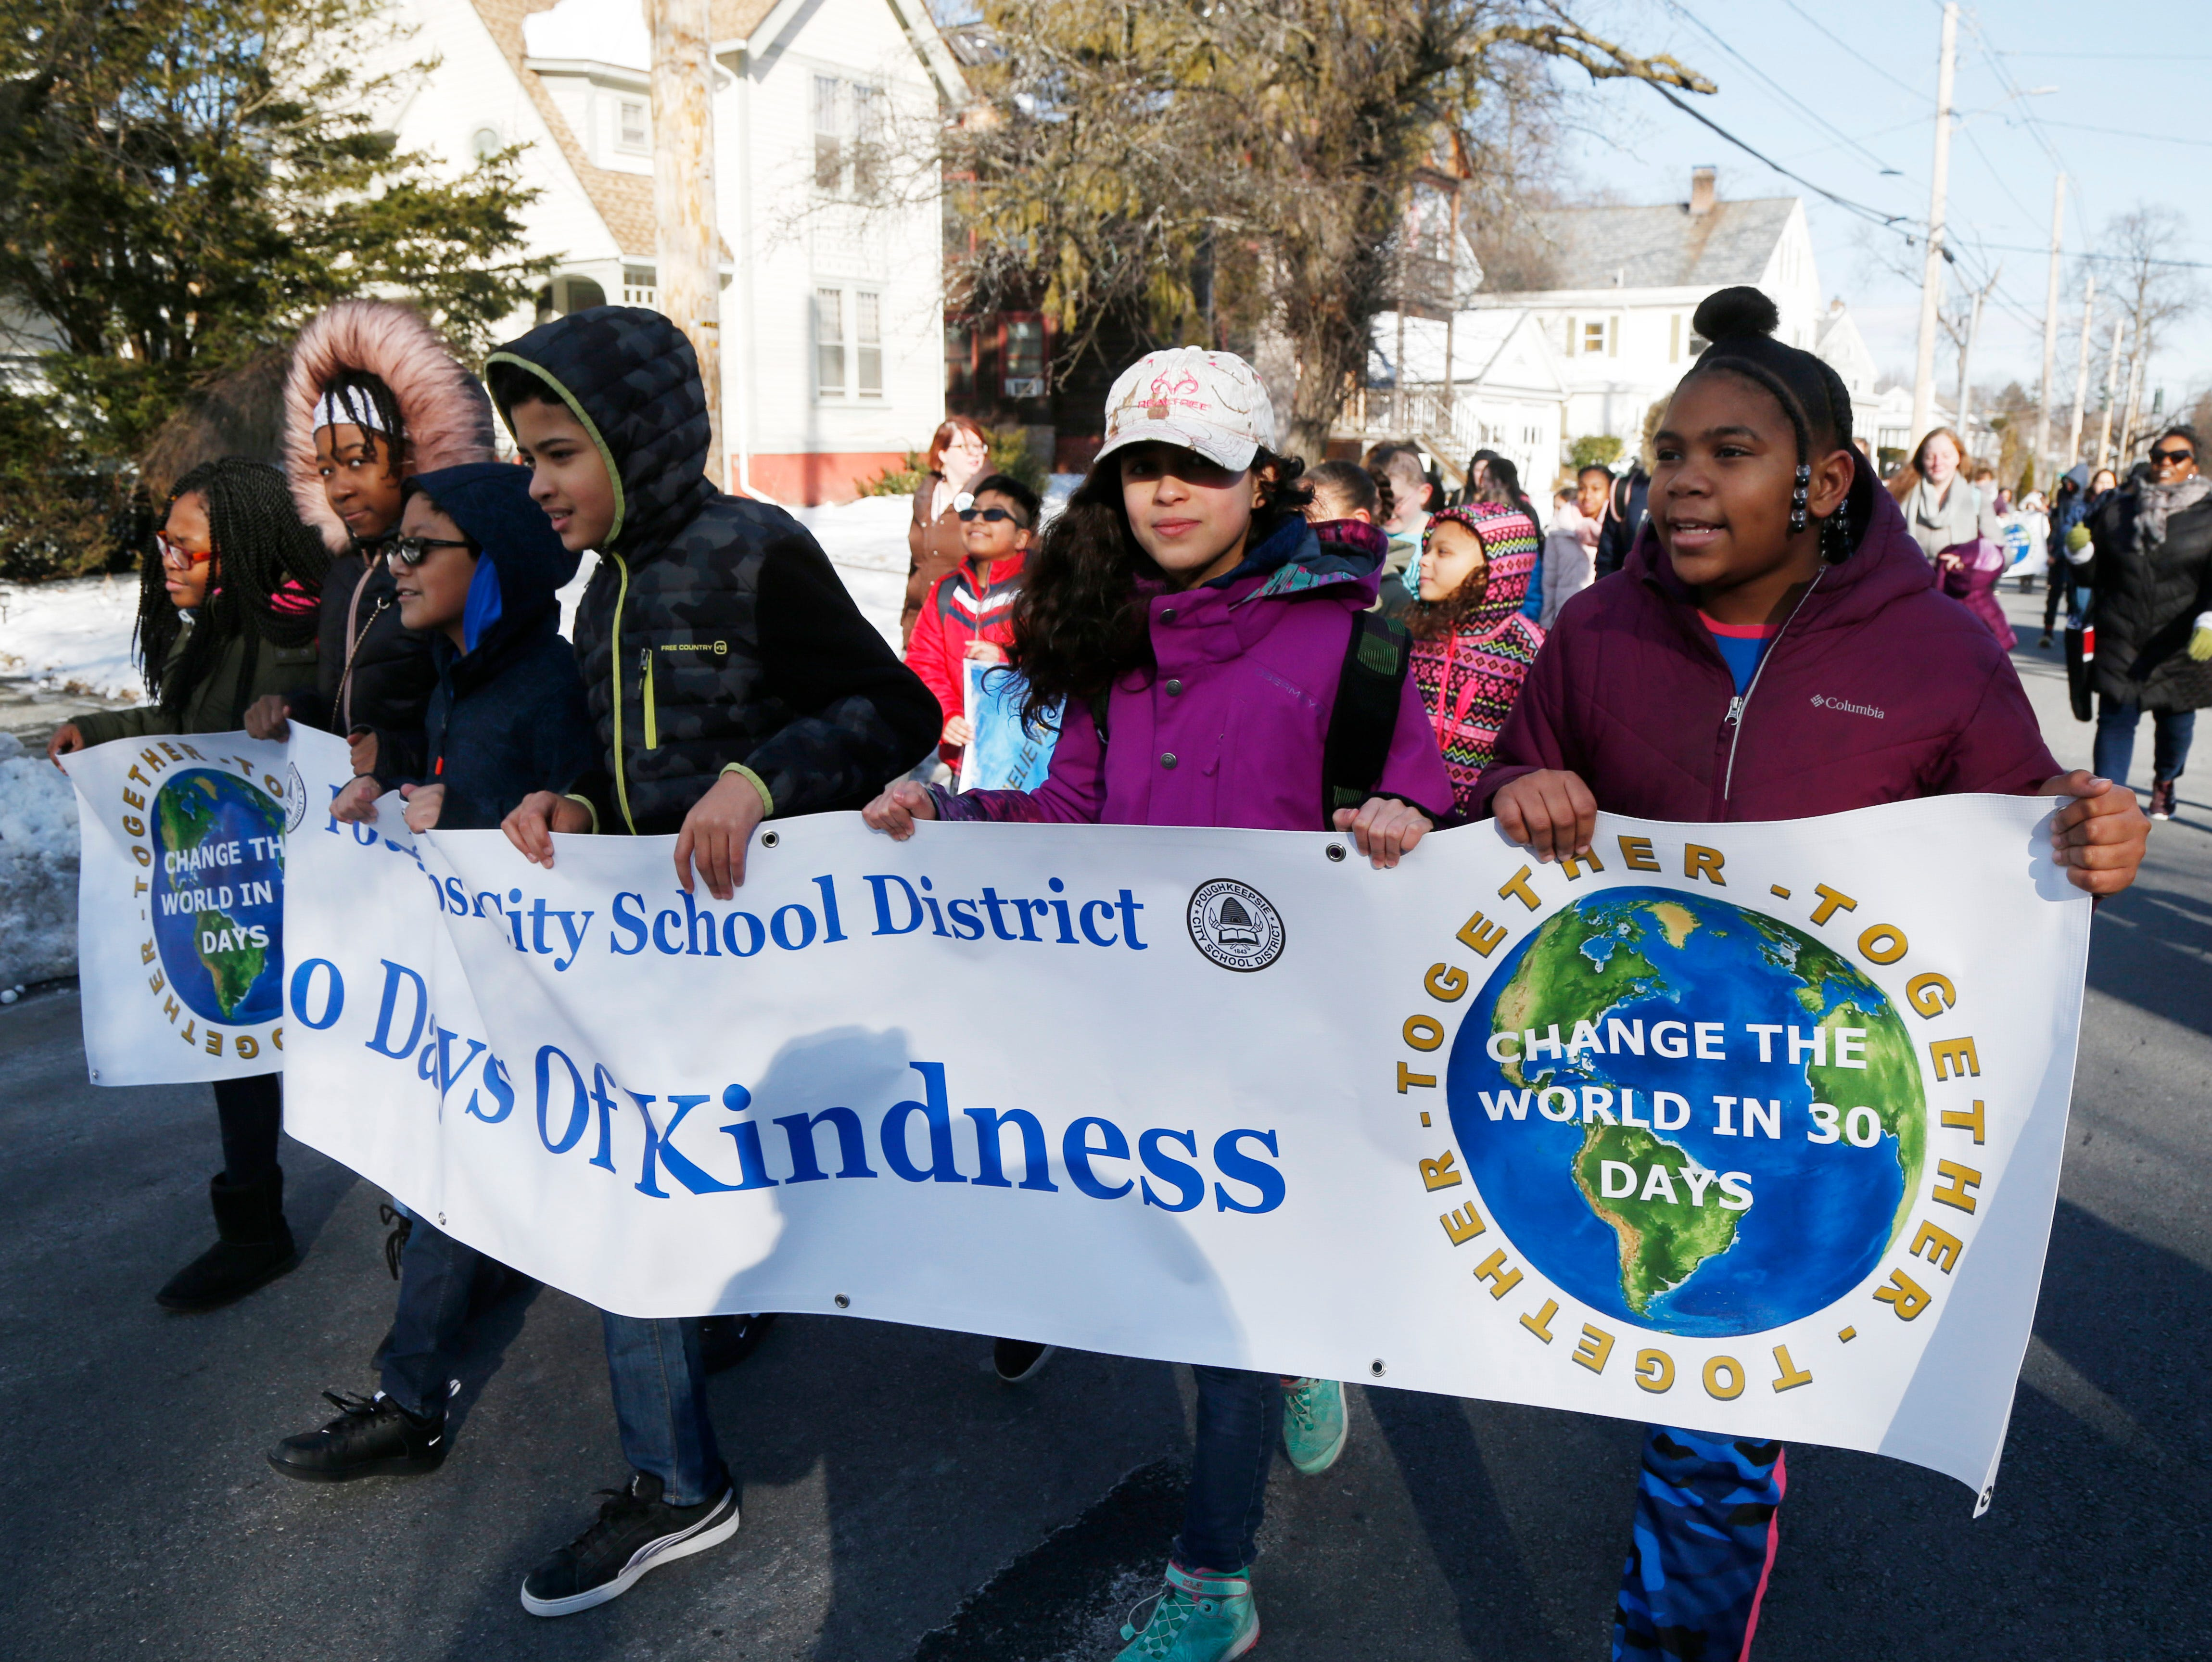 Leading the City of Poughkeepsie school district peace walk as part of Thursday's Martin Luther King Celebration, students from Clinton Elementary School, from left, Kyshina Justus-Gause, Kylee Anglero, Kameron Palmatier, Ian Reyes, Renae Gillette and Leilani Thompson march along South Cherry Street on February 14, 2019.